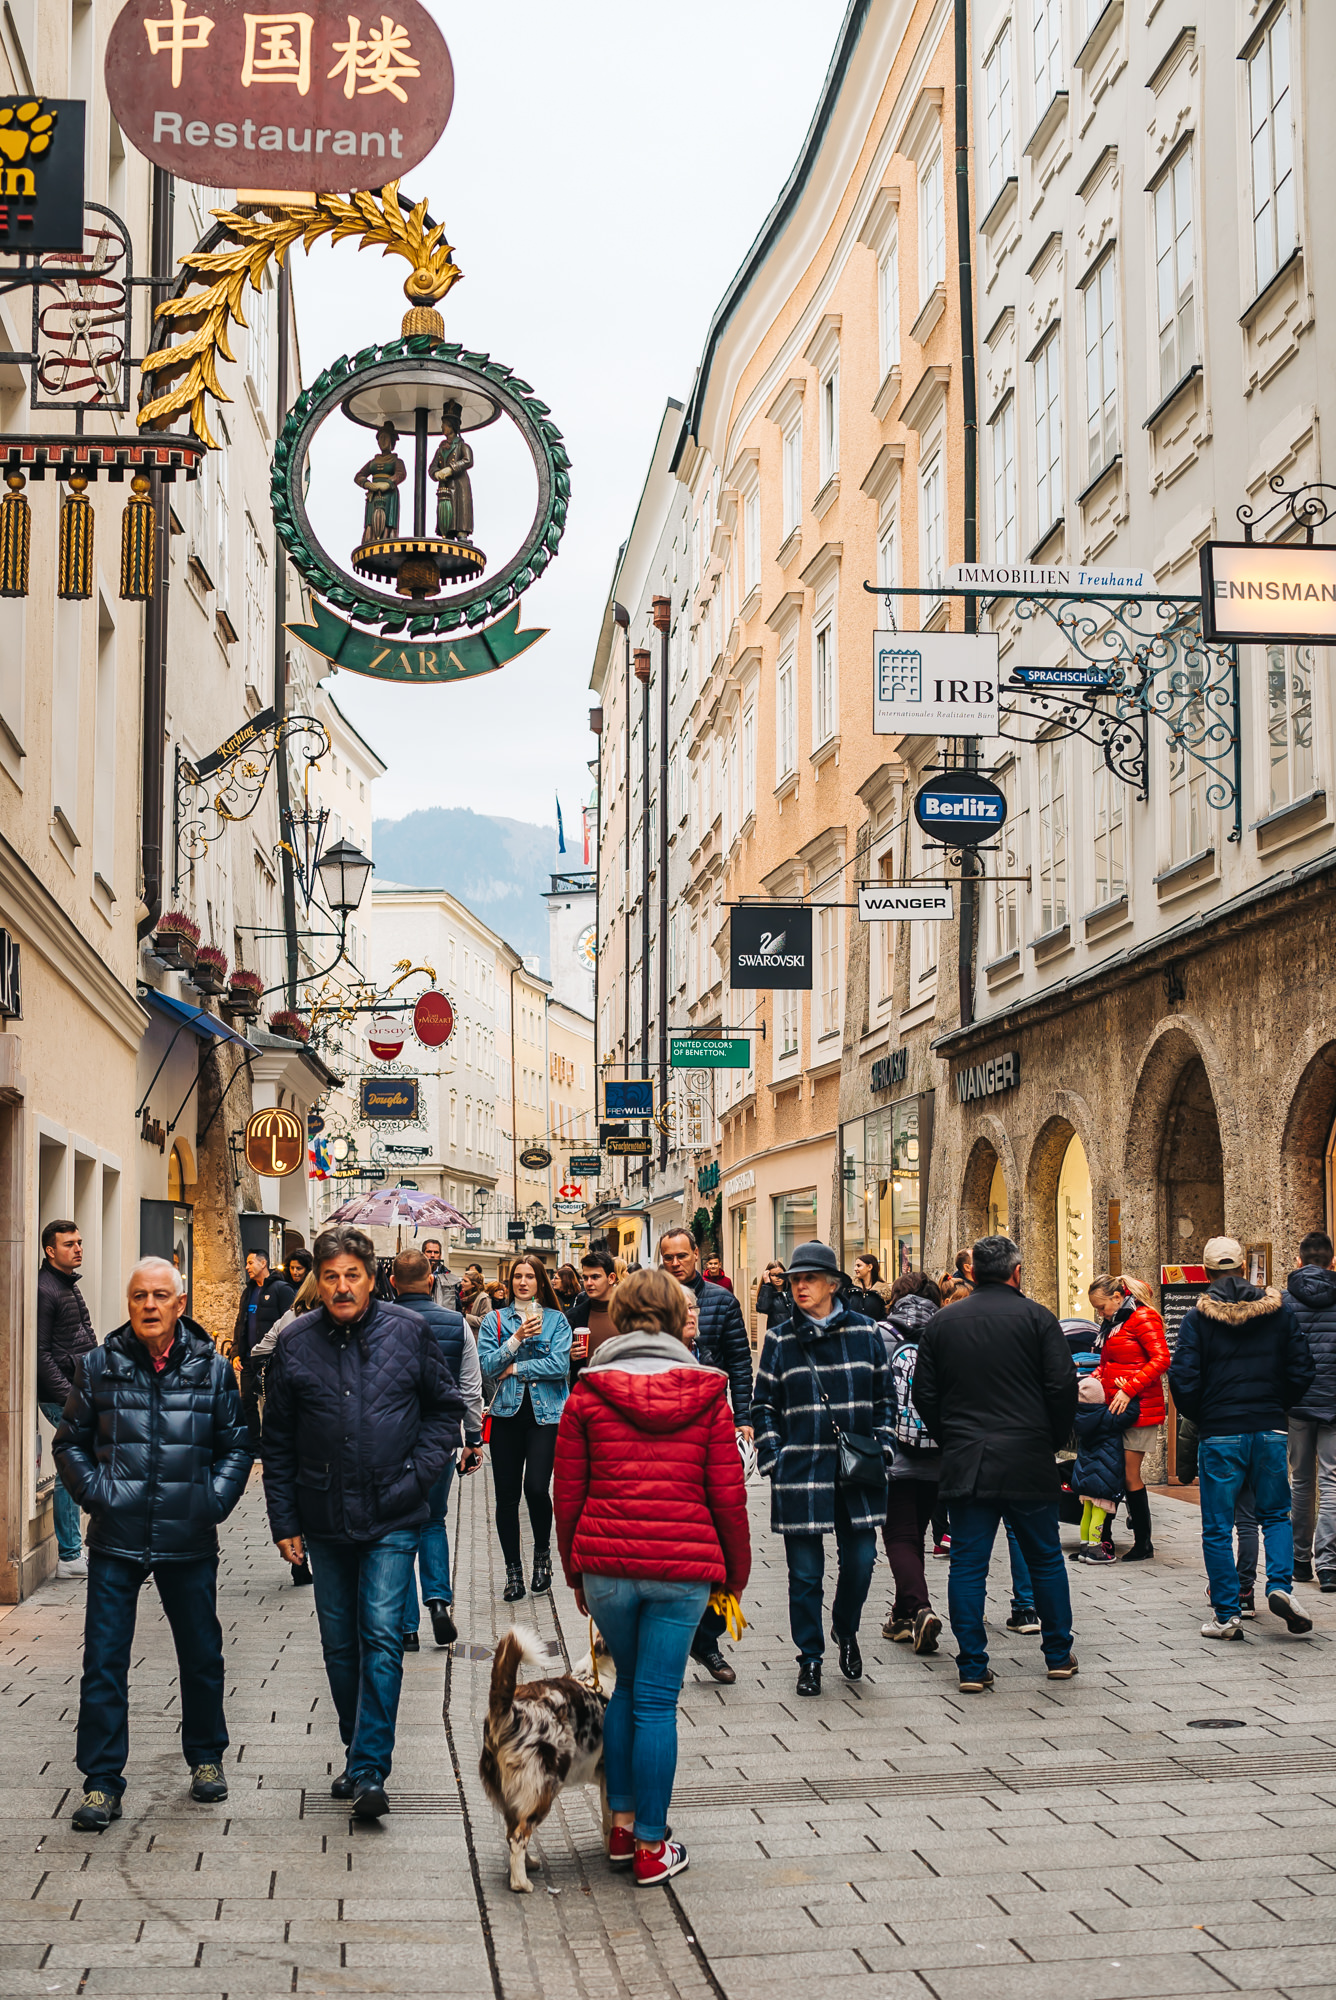 Each store has an iron sign, which is part of Salzburg's tradition